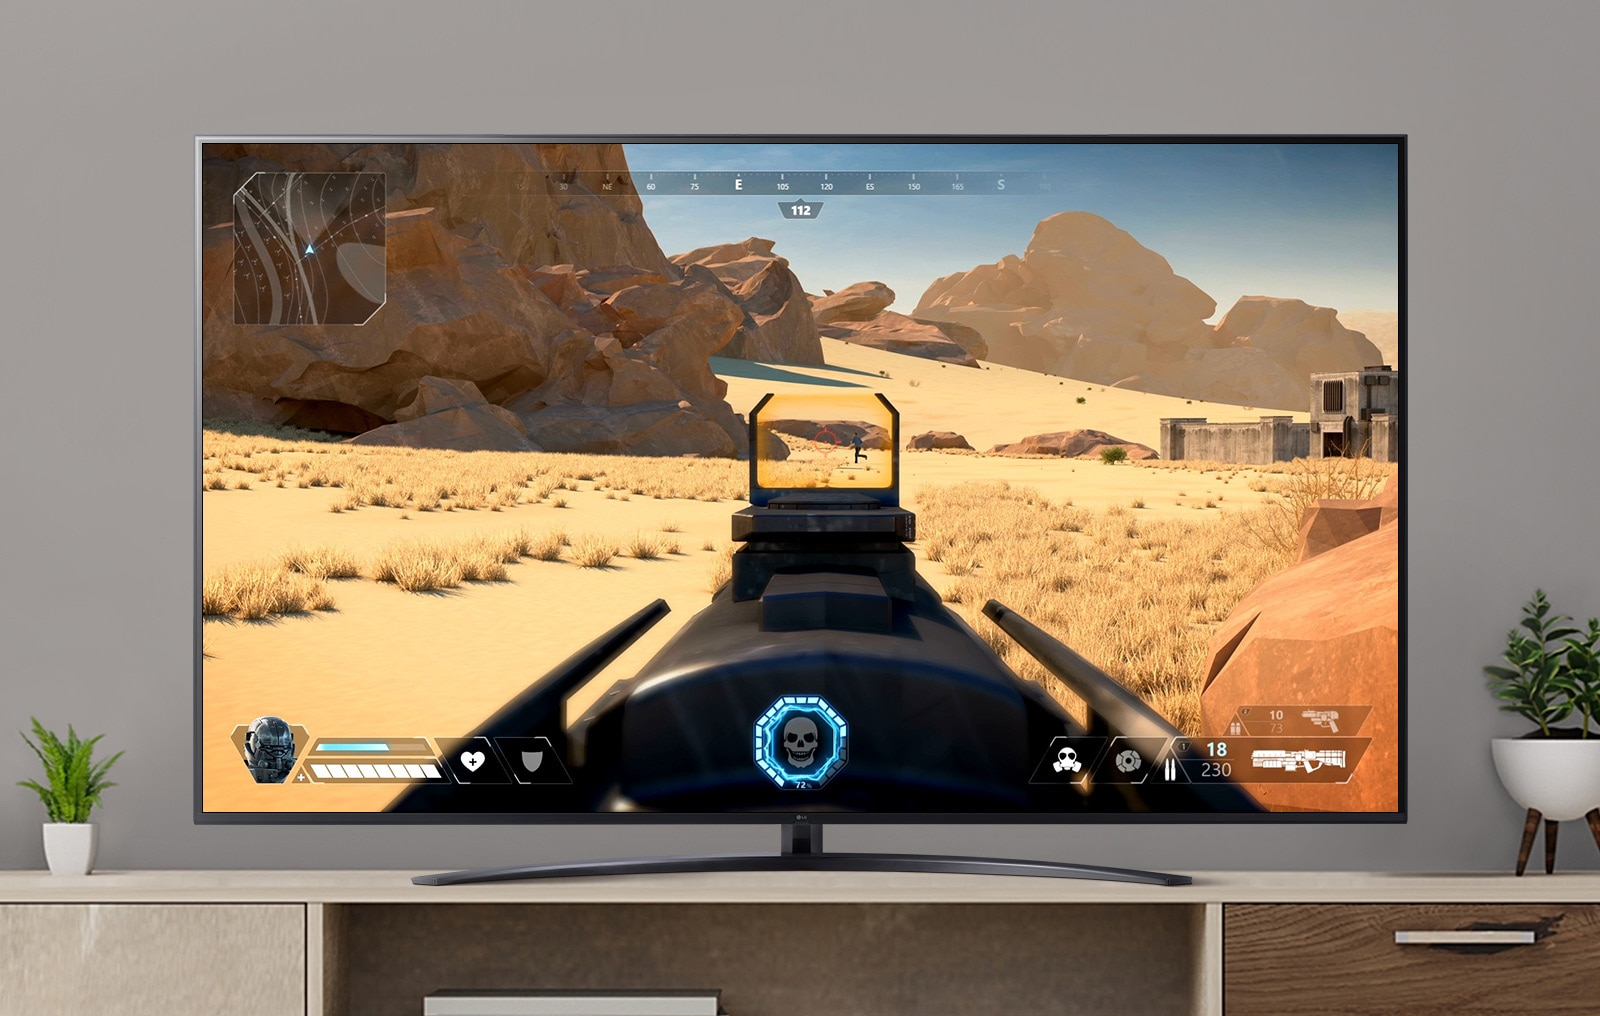 A video is shown on a TV screen with an FPS game in which a gun is fired at an enemy. (play video)